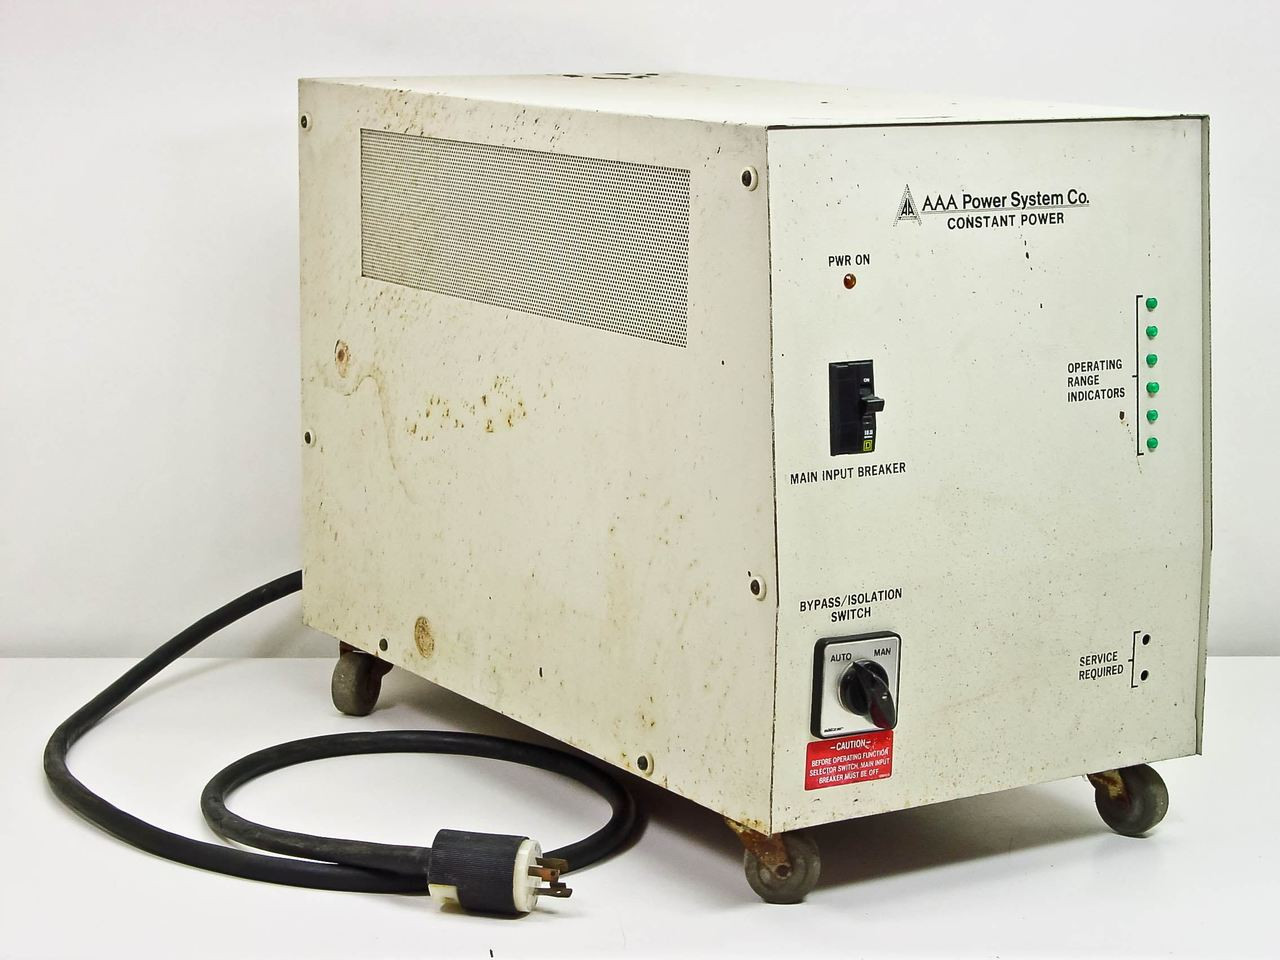 Aaa Power Systems Co Ar005c0200t1 5kva Constant Supply Line Insulation Tester 5kv Conditioner